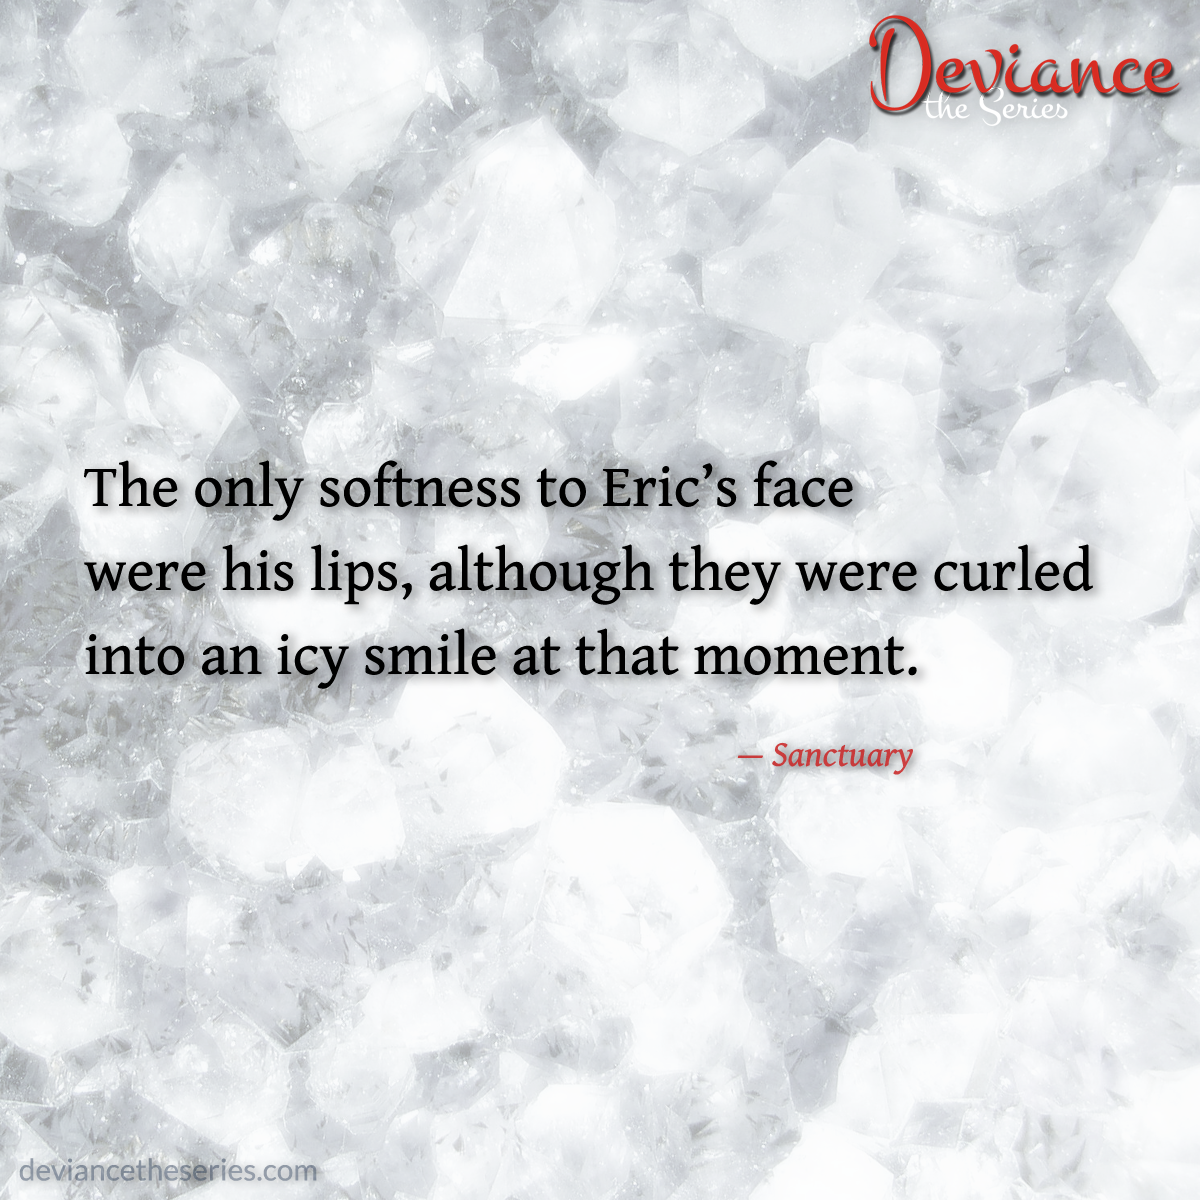 Deviance the Series, Volume 1: Sanctuary